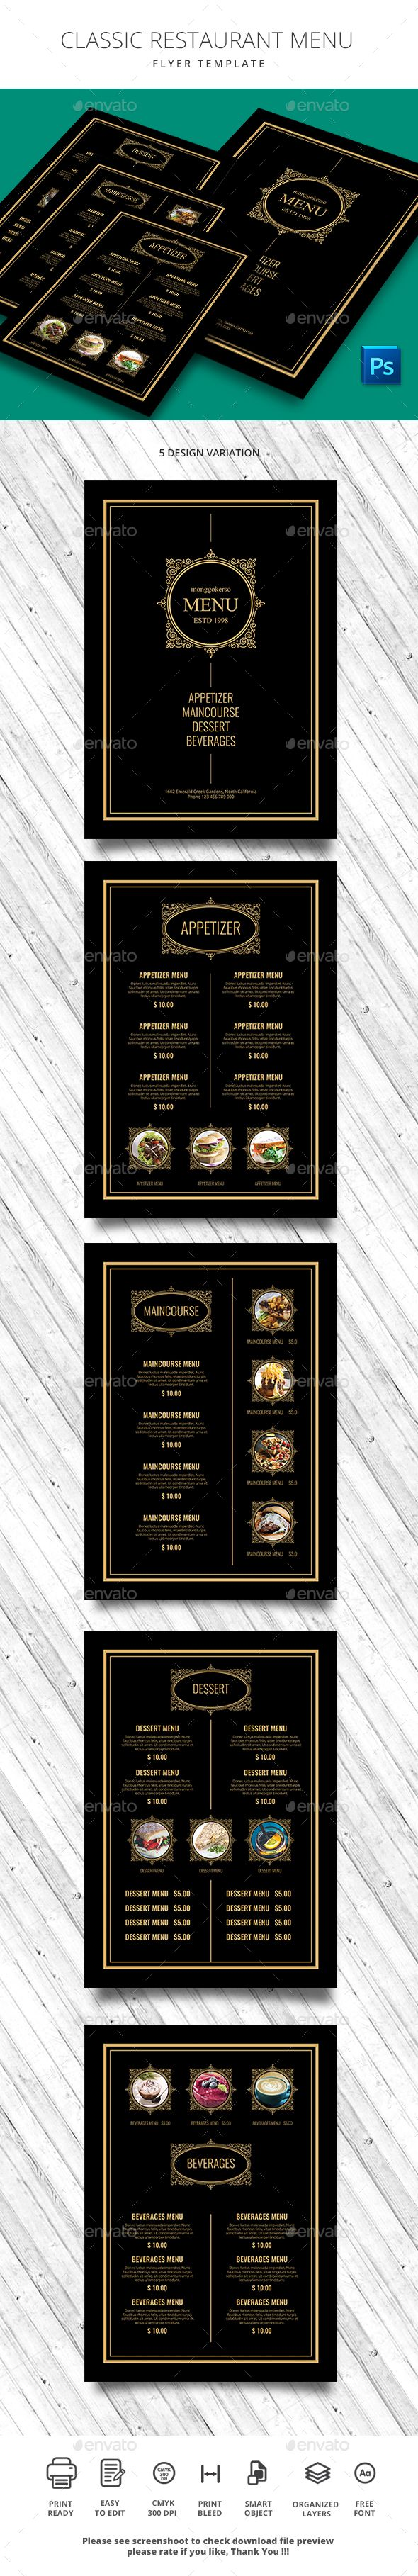 Classic Restaurant Menu - #Food Menus Print Templates